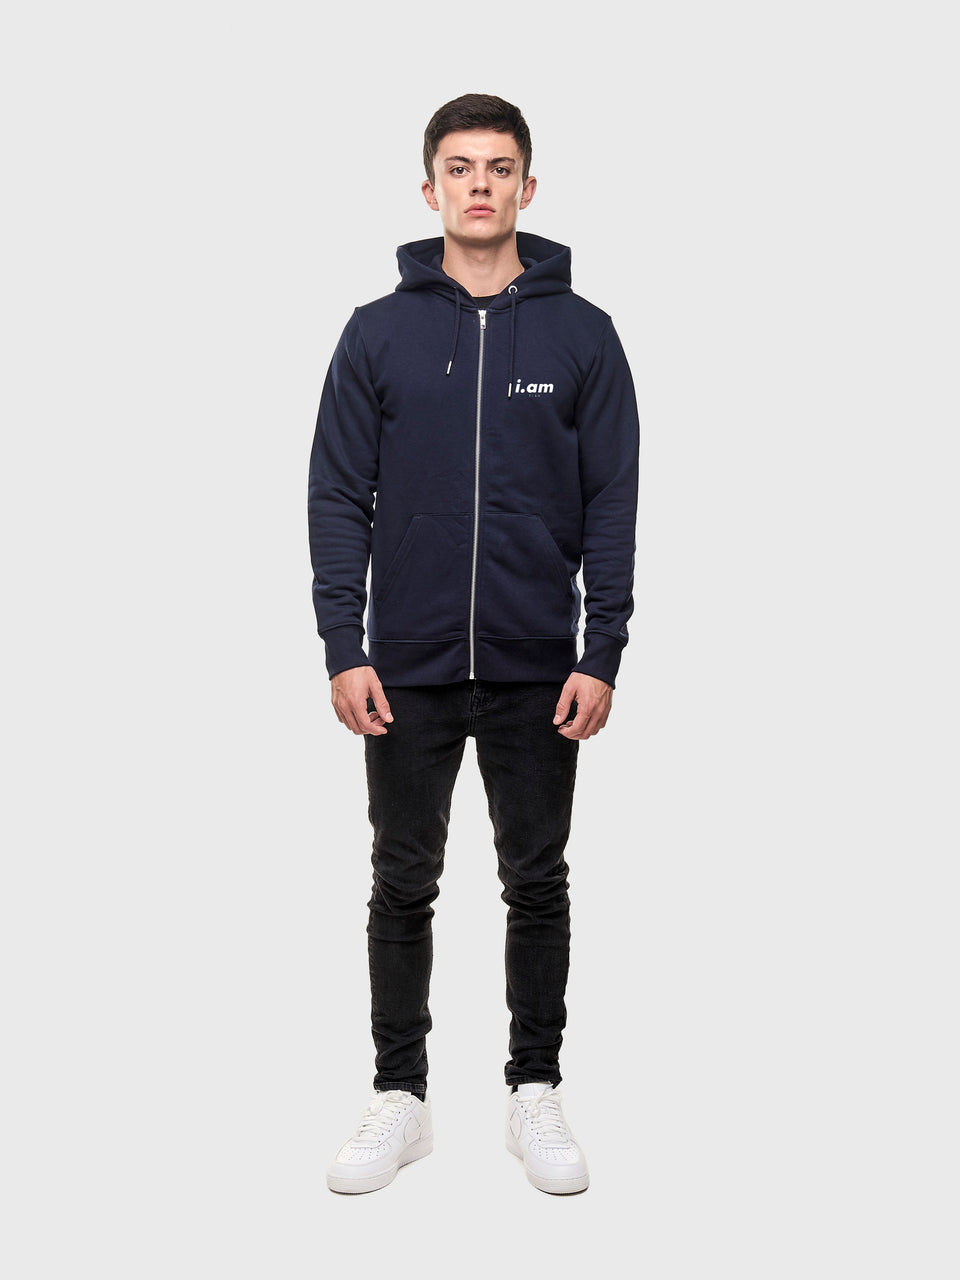 Making it - Navy - Unisex zip up hoodie